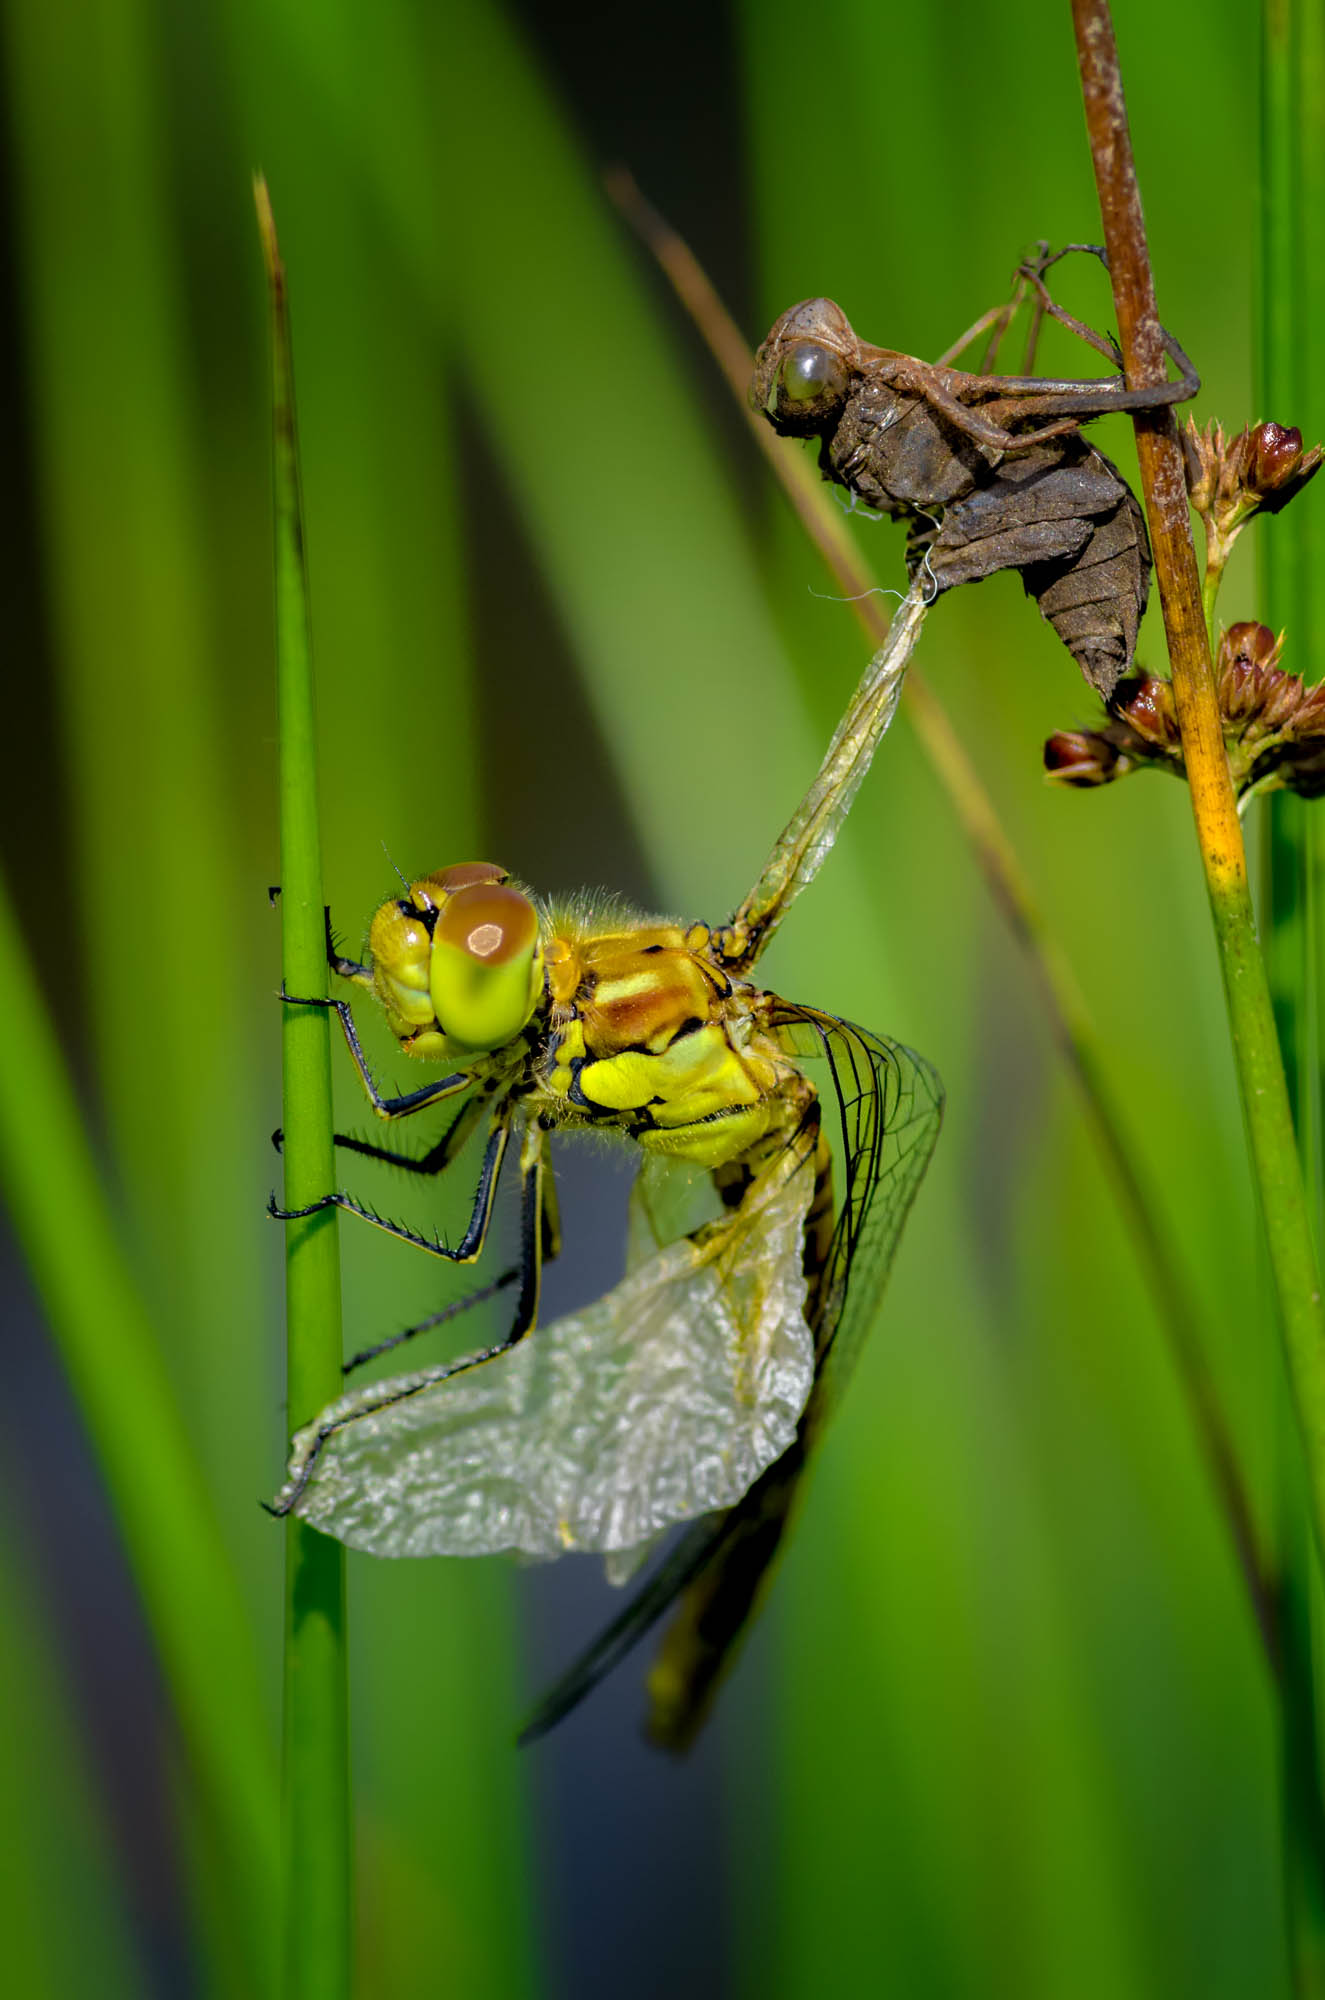 A female Common Hawker emerging from its Exuvia